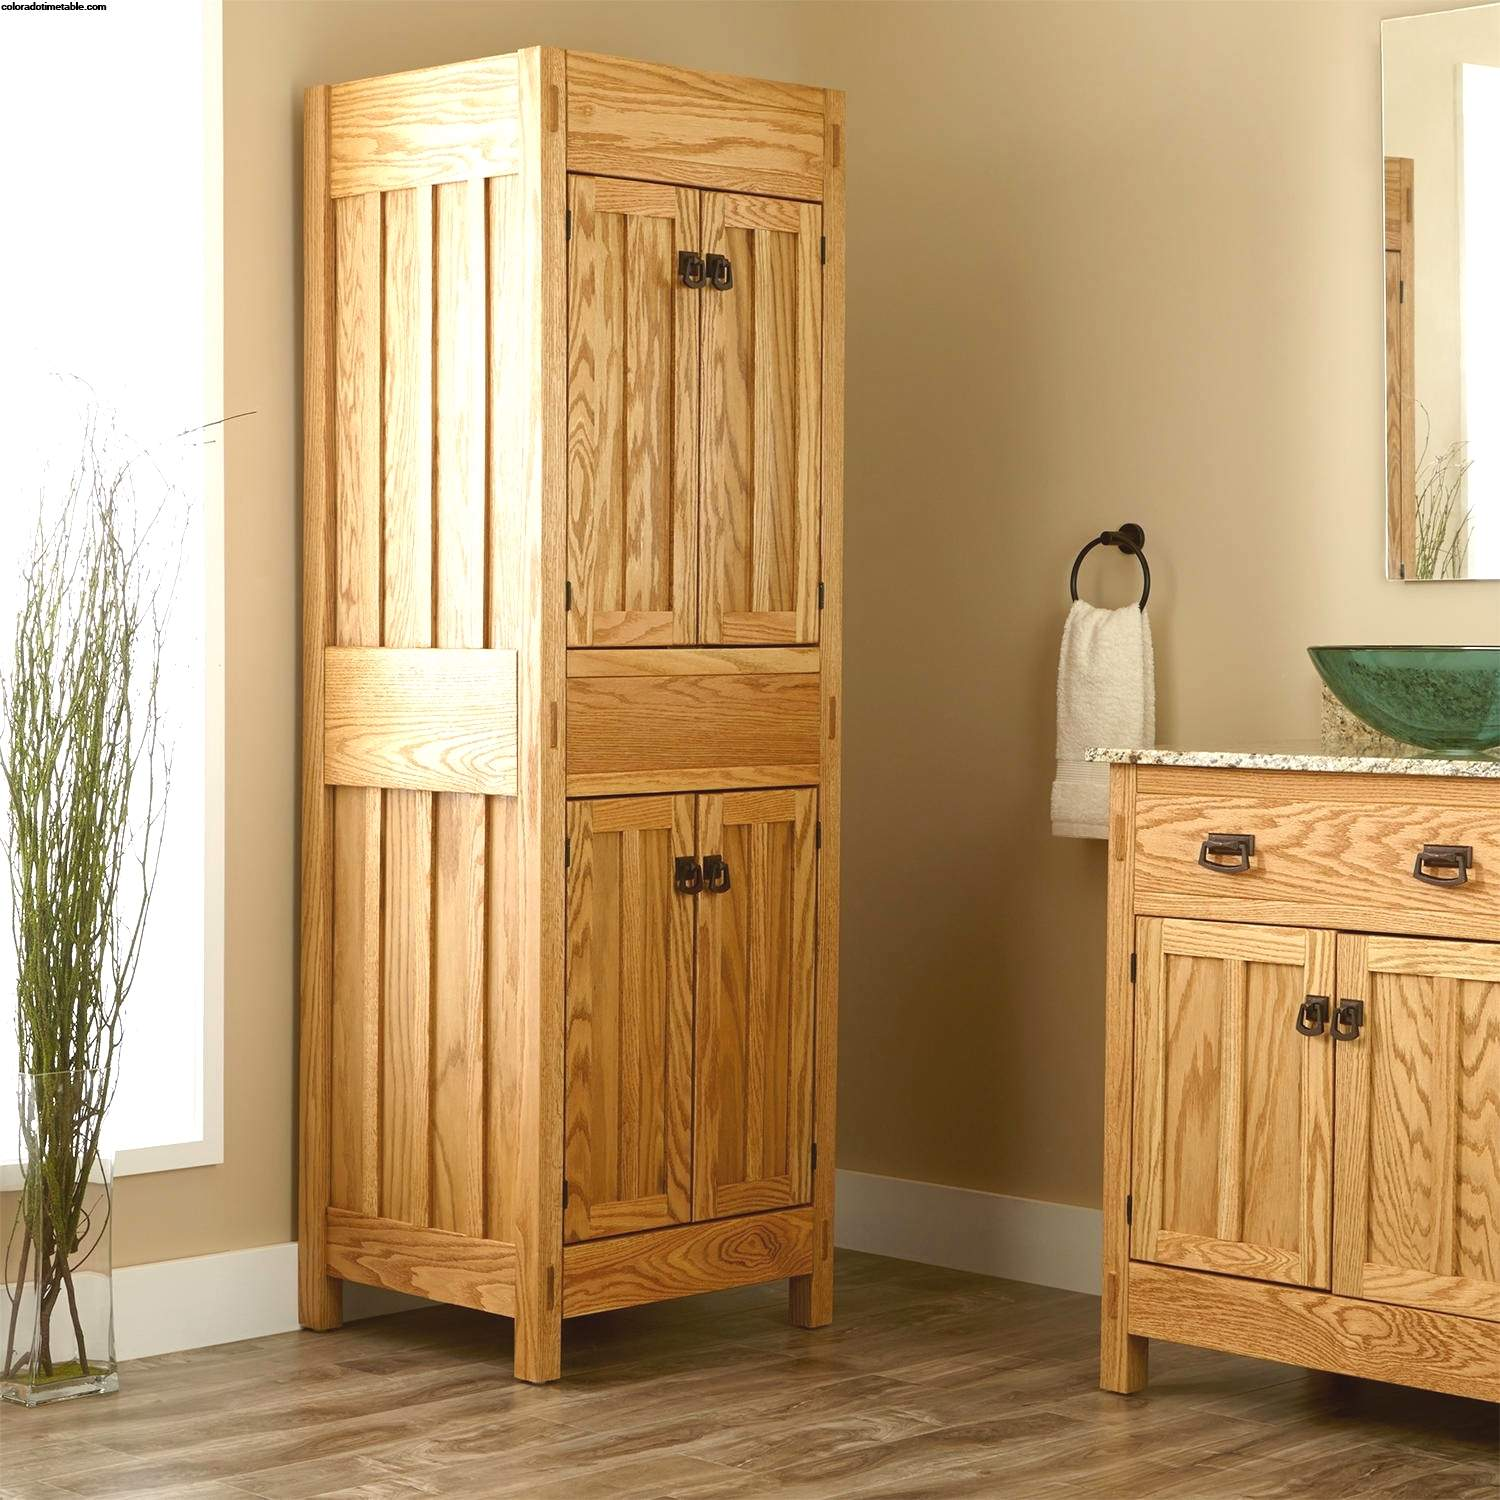 free standing linen cabinets for bathroom bathroom vanities with matching linen cabinets selected 7 perfect bathroom SNNHTWD